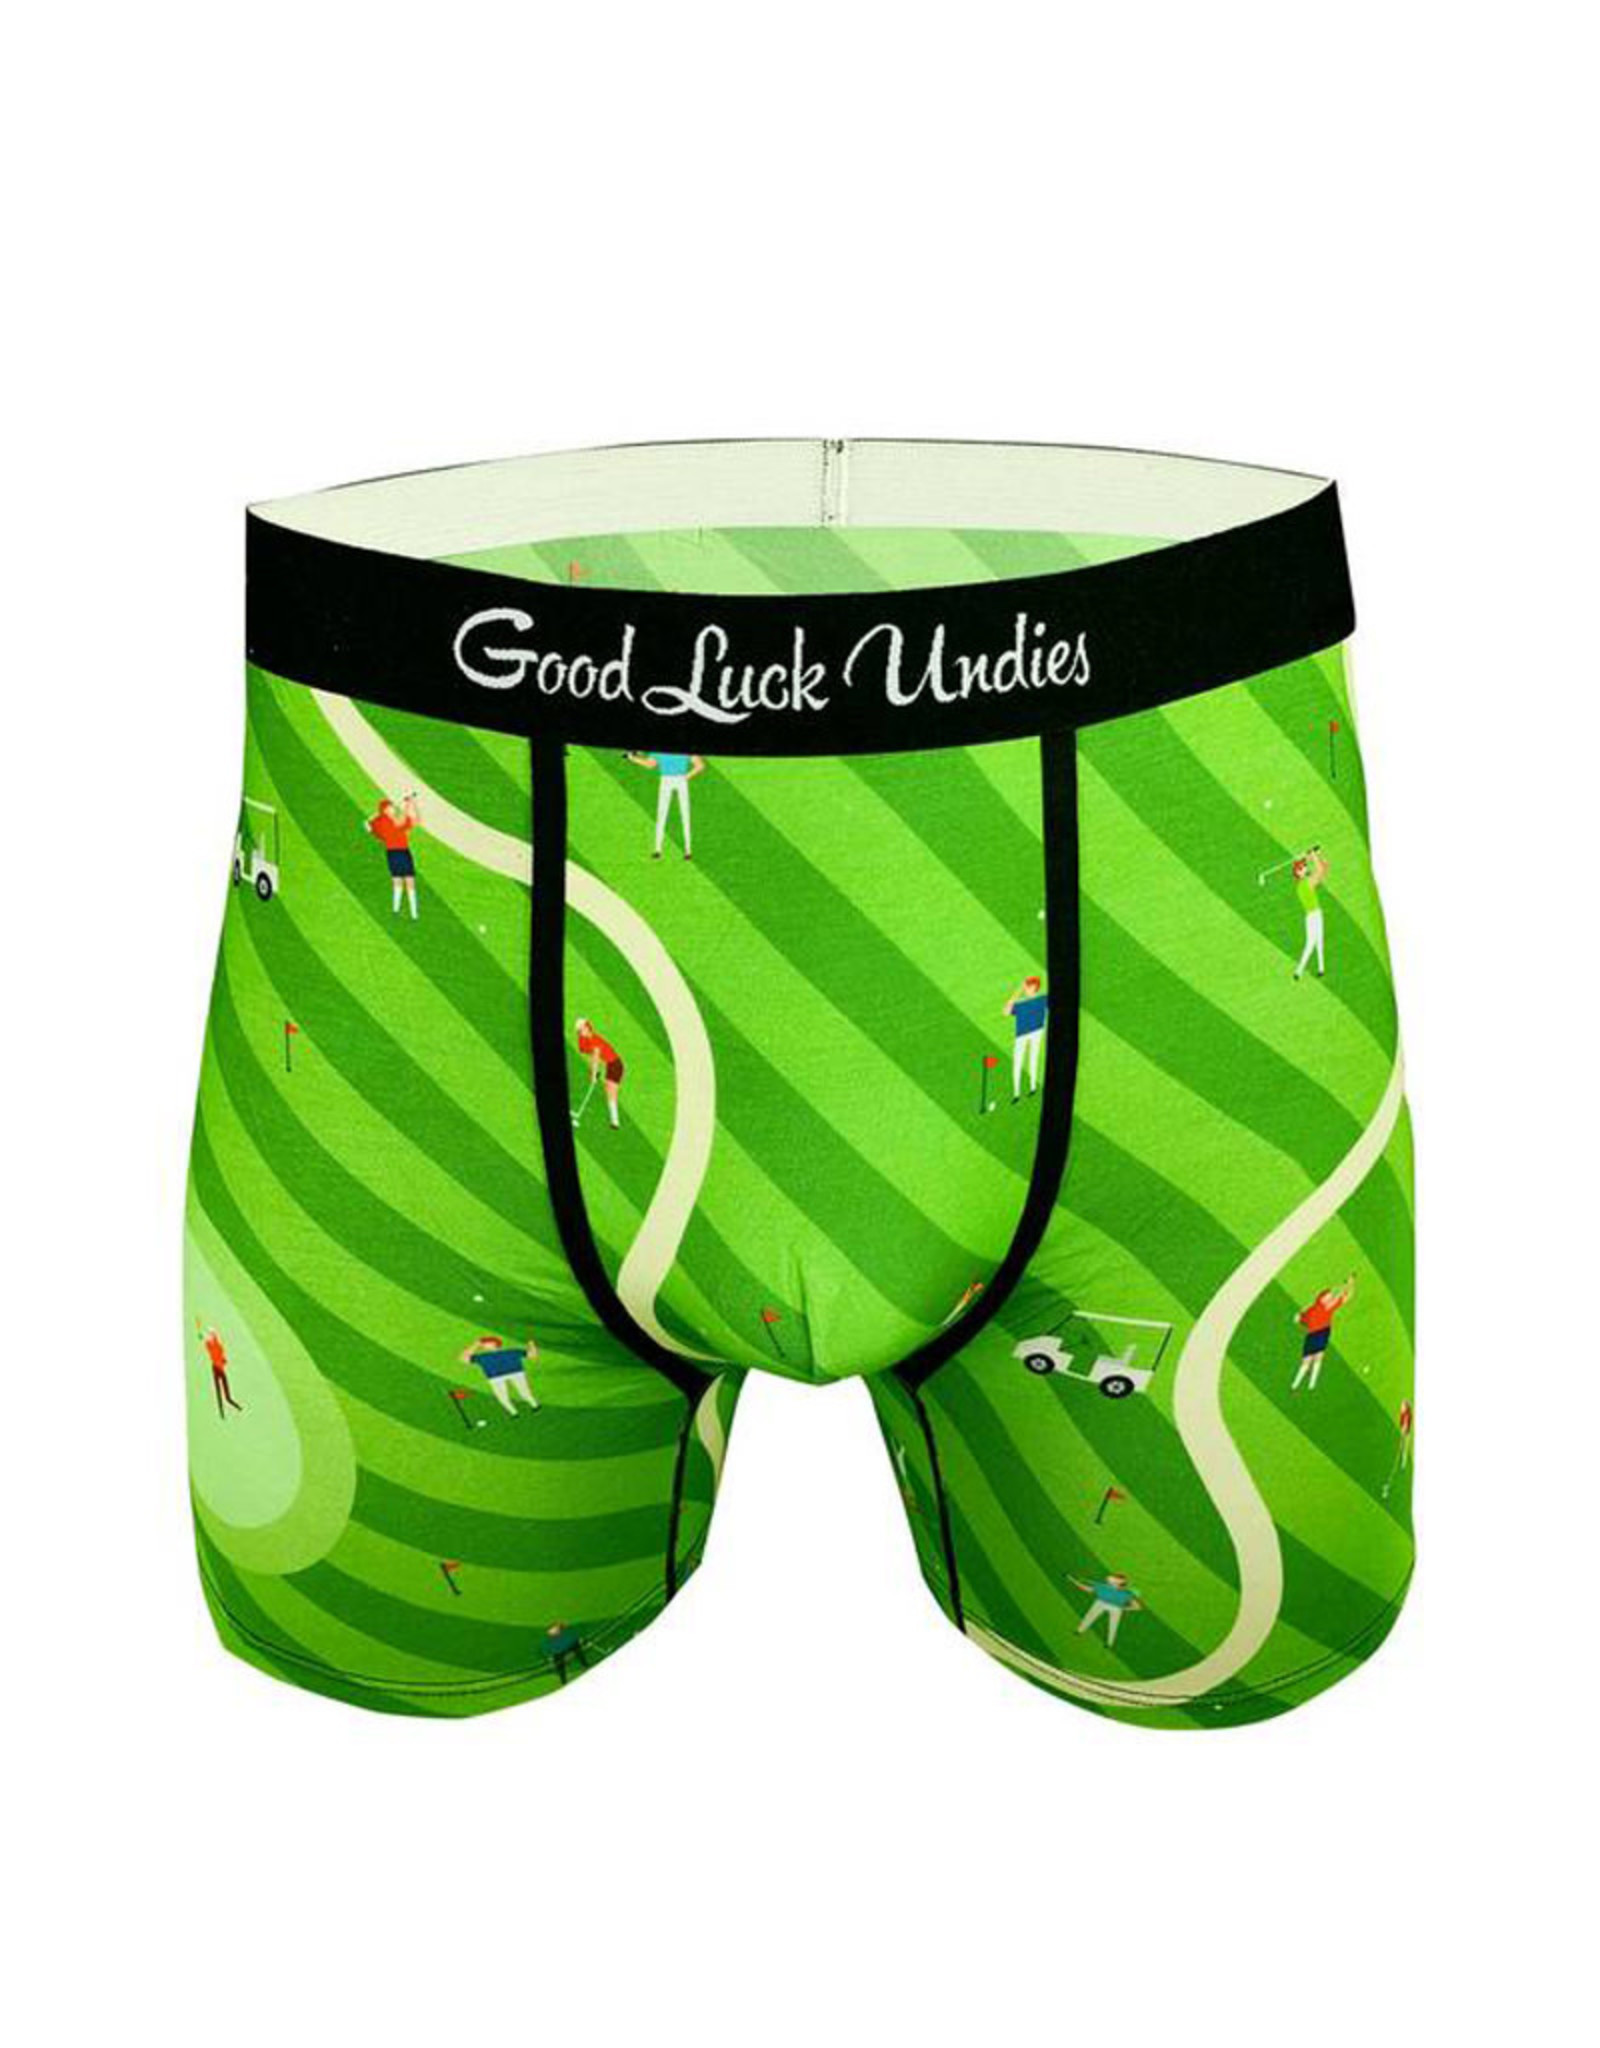 Boxer ( Good Luck Undies ) Golf